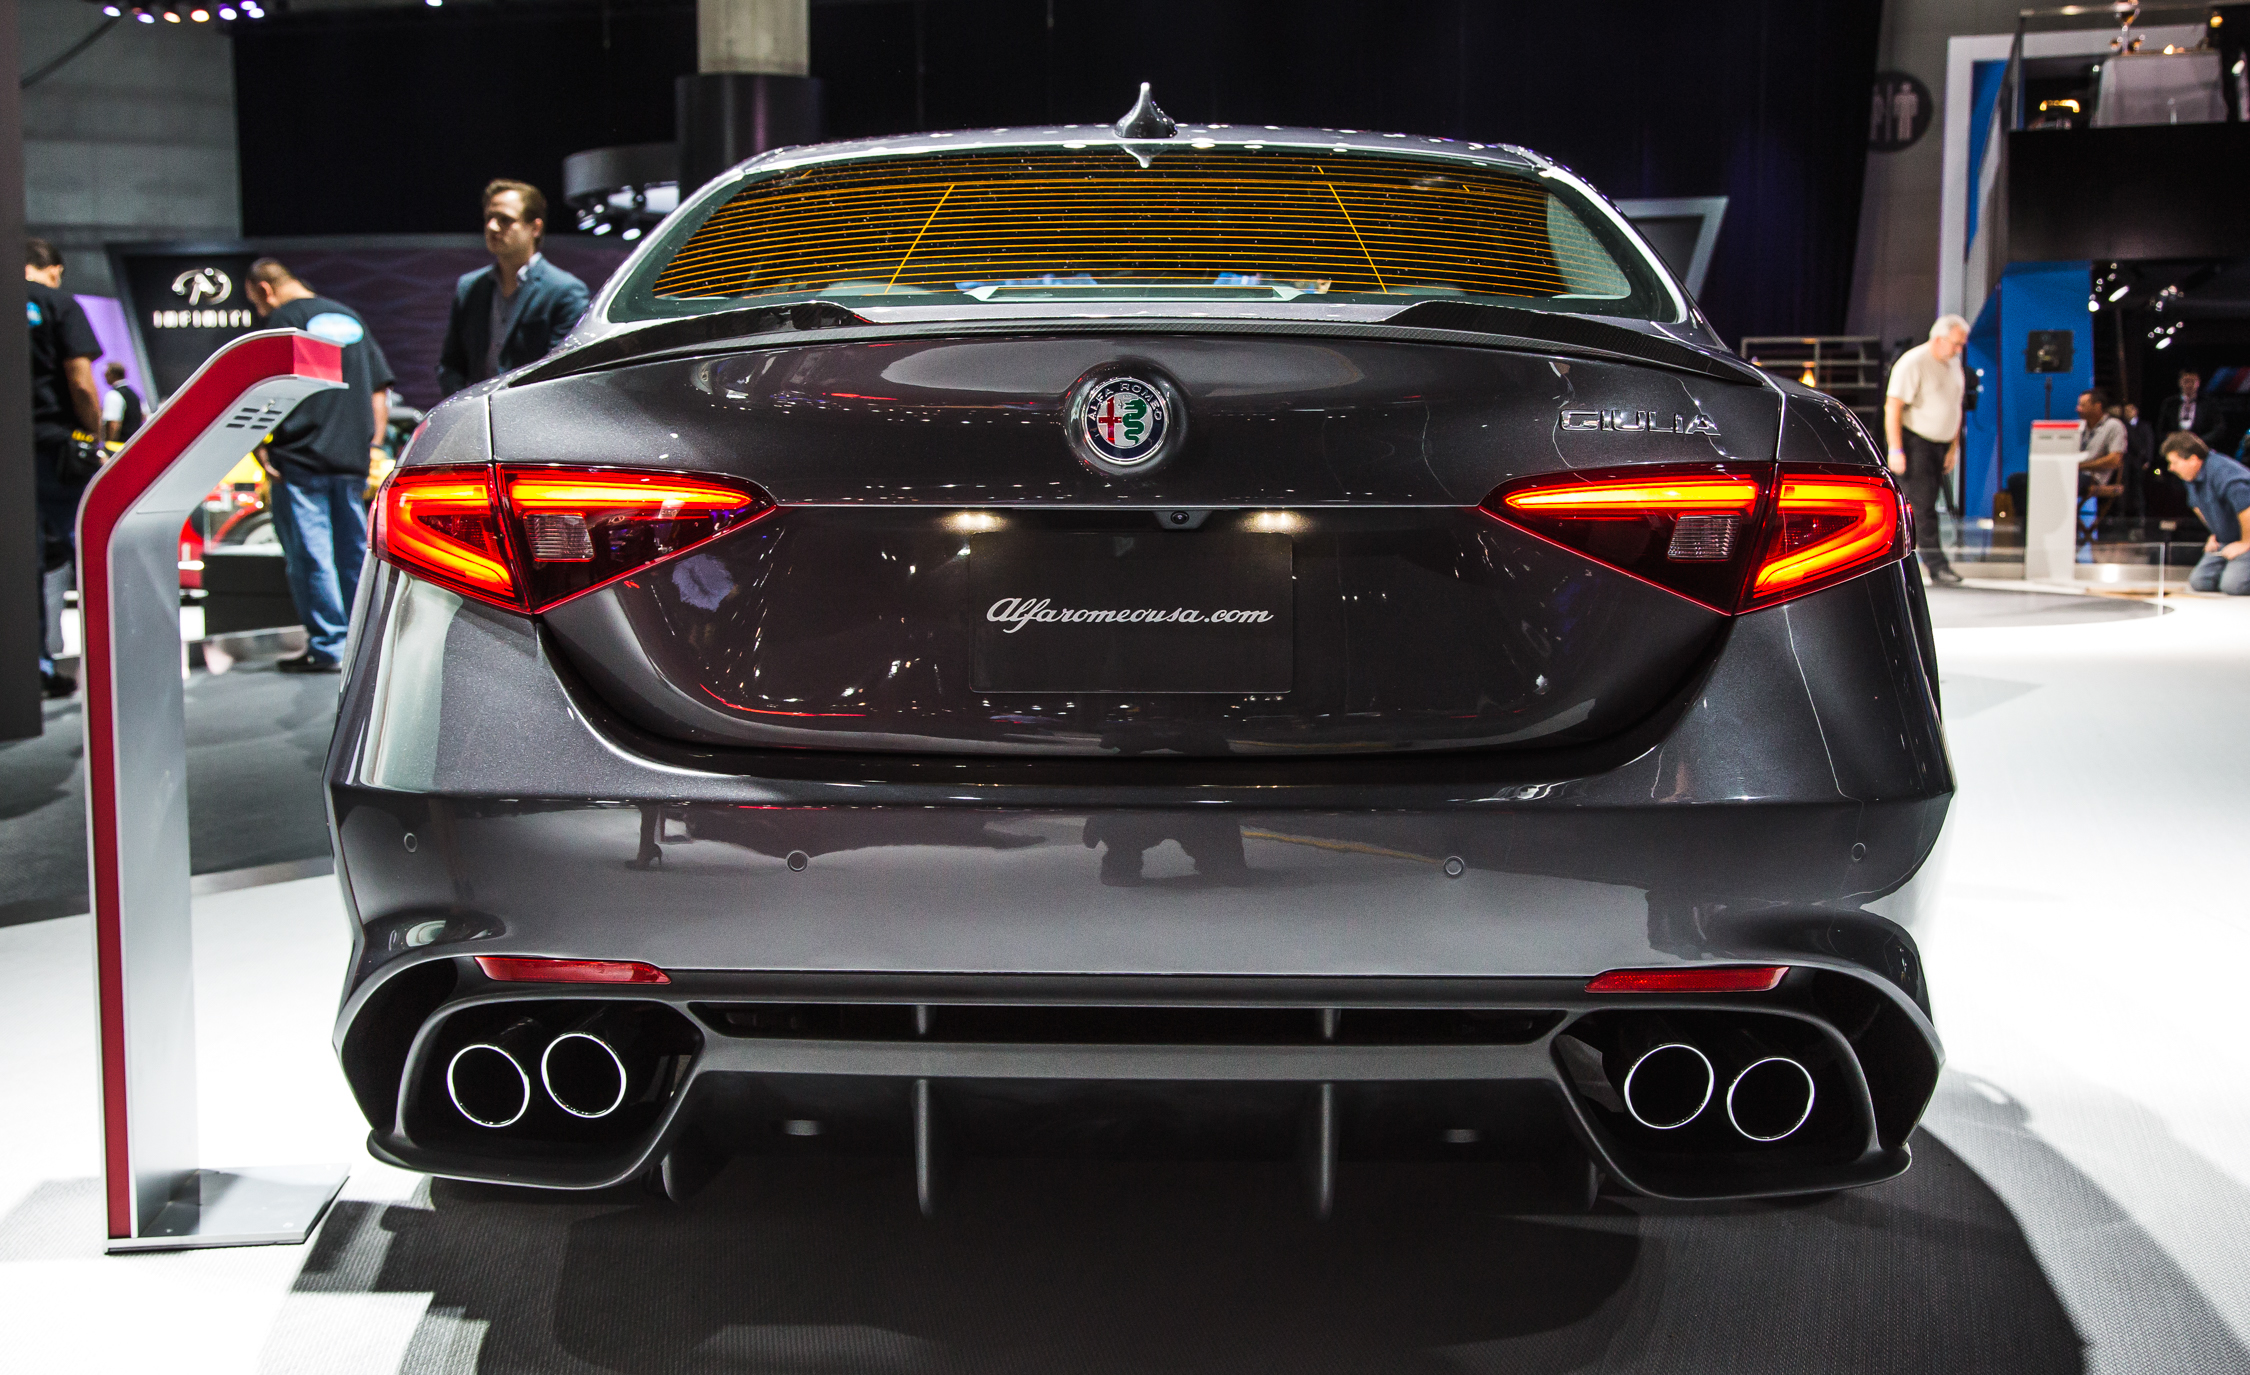 2017 Alfa Romeo Giulia Quadrifoglio Rear End Exterior (Photo 24 of 29)